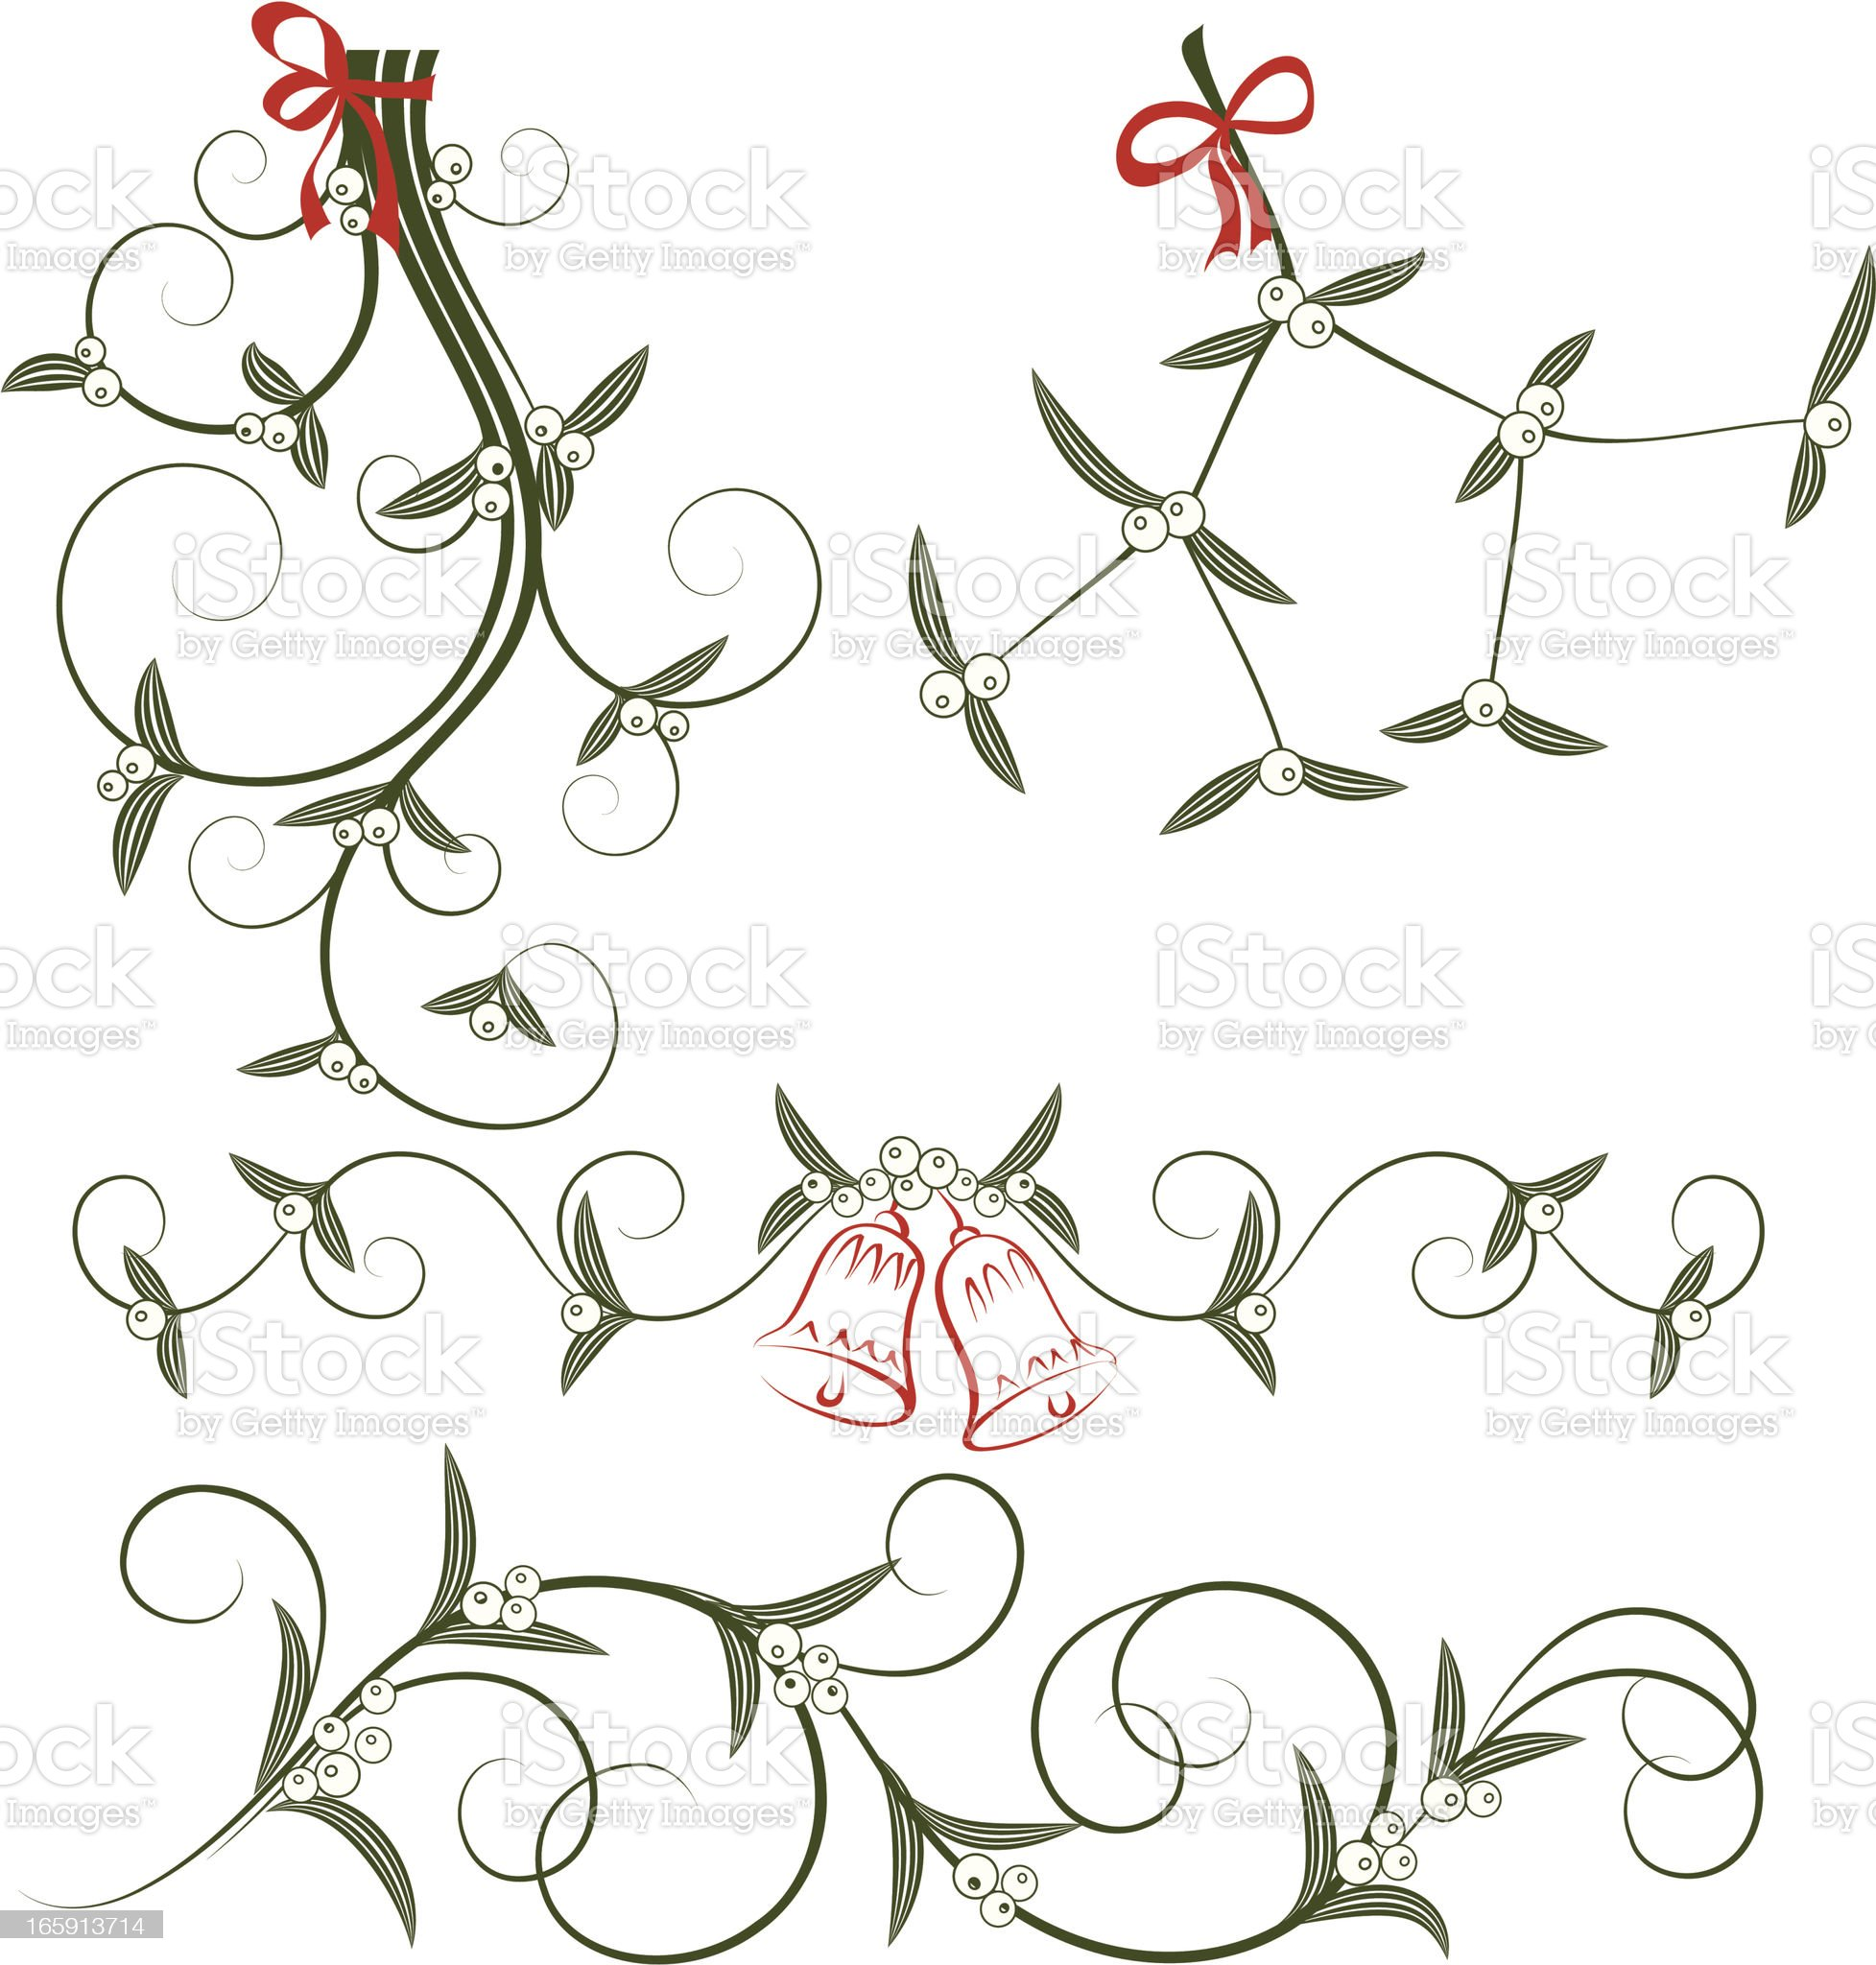 Hand drawn images of mistletoe in black and red royalty-free stock vector art